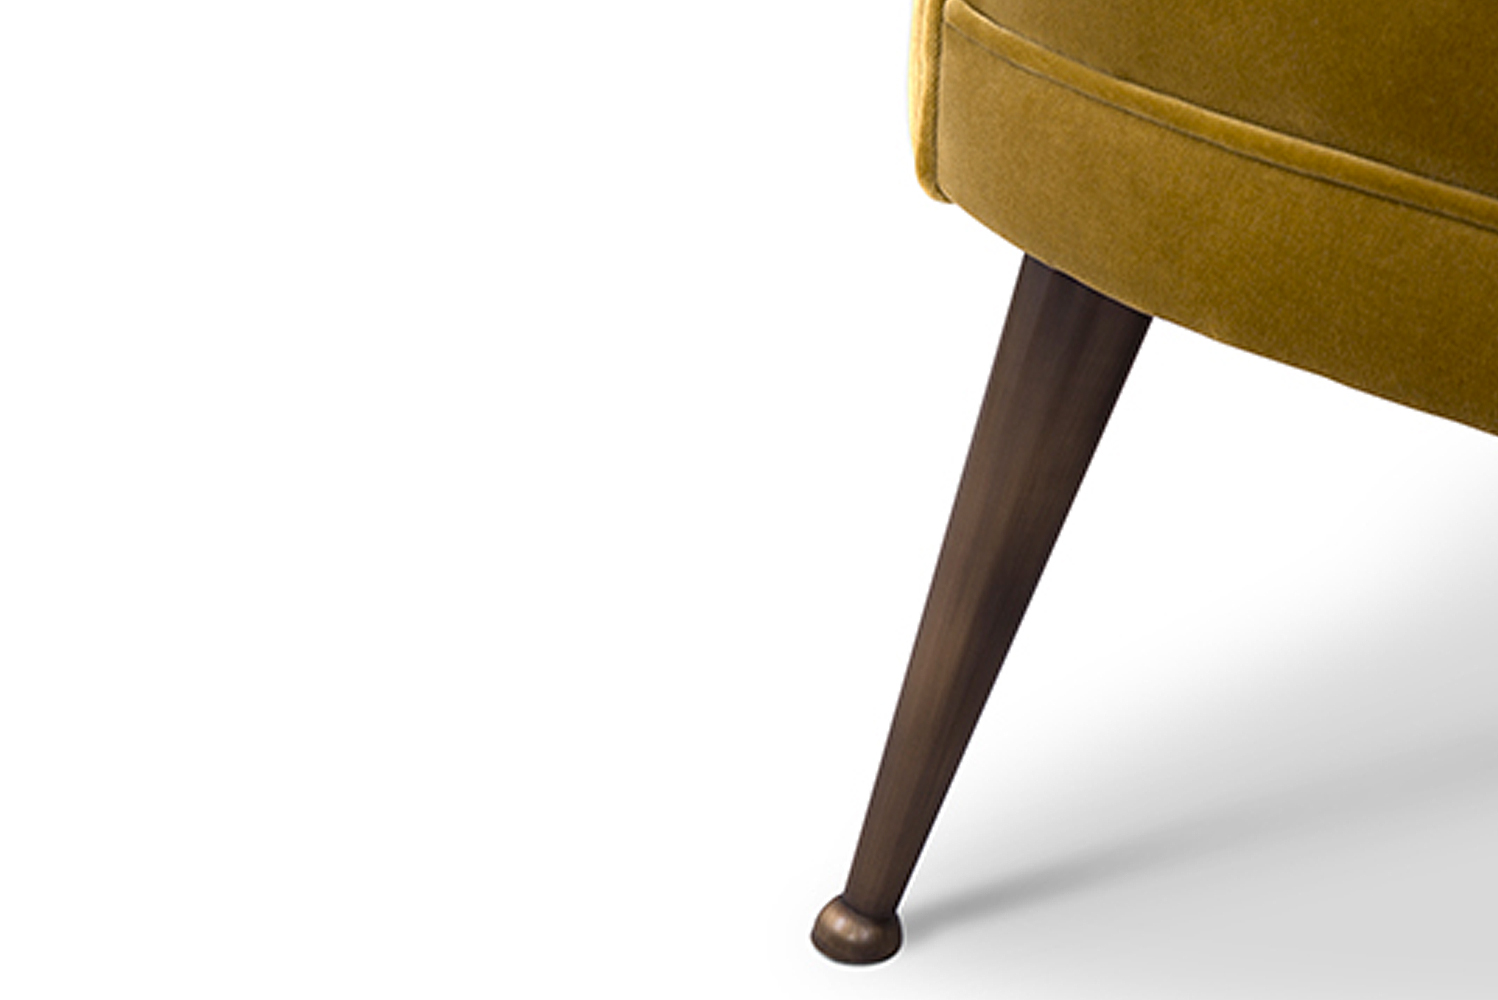 Inspired by the Mayan civilization's maize god, Maya has legs in matte aged brass.